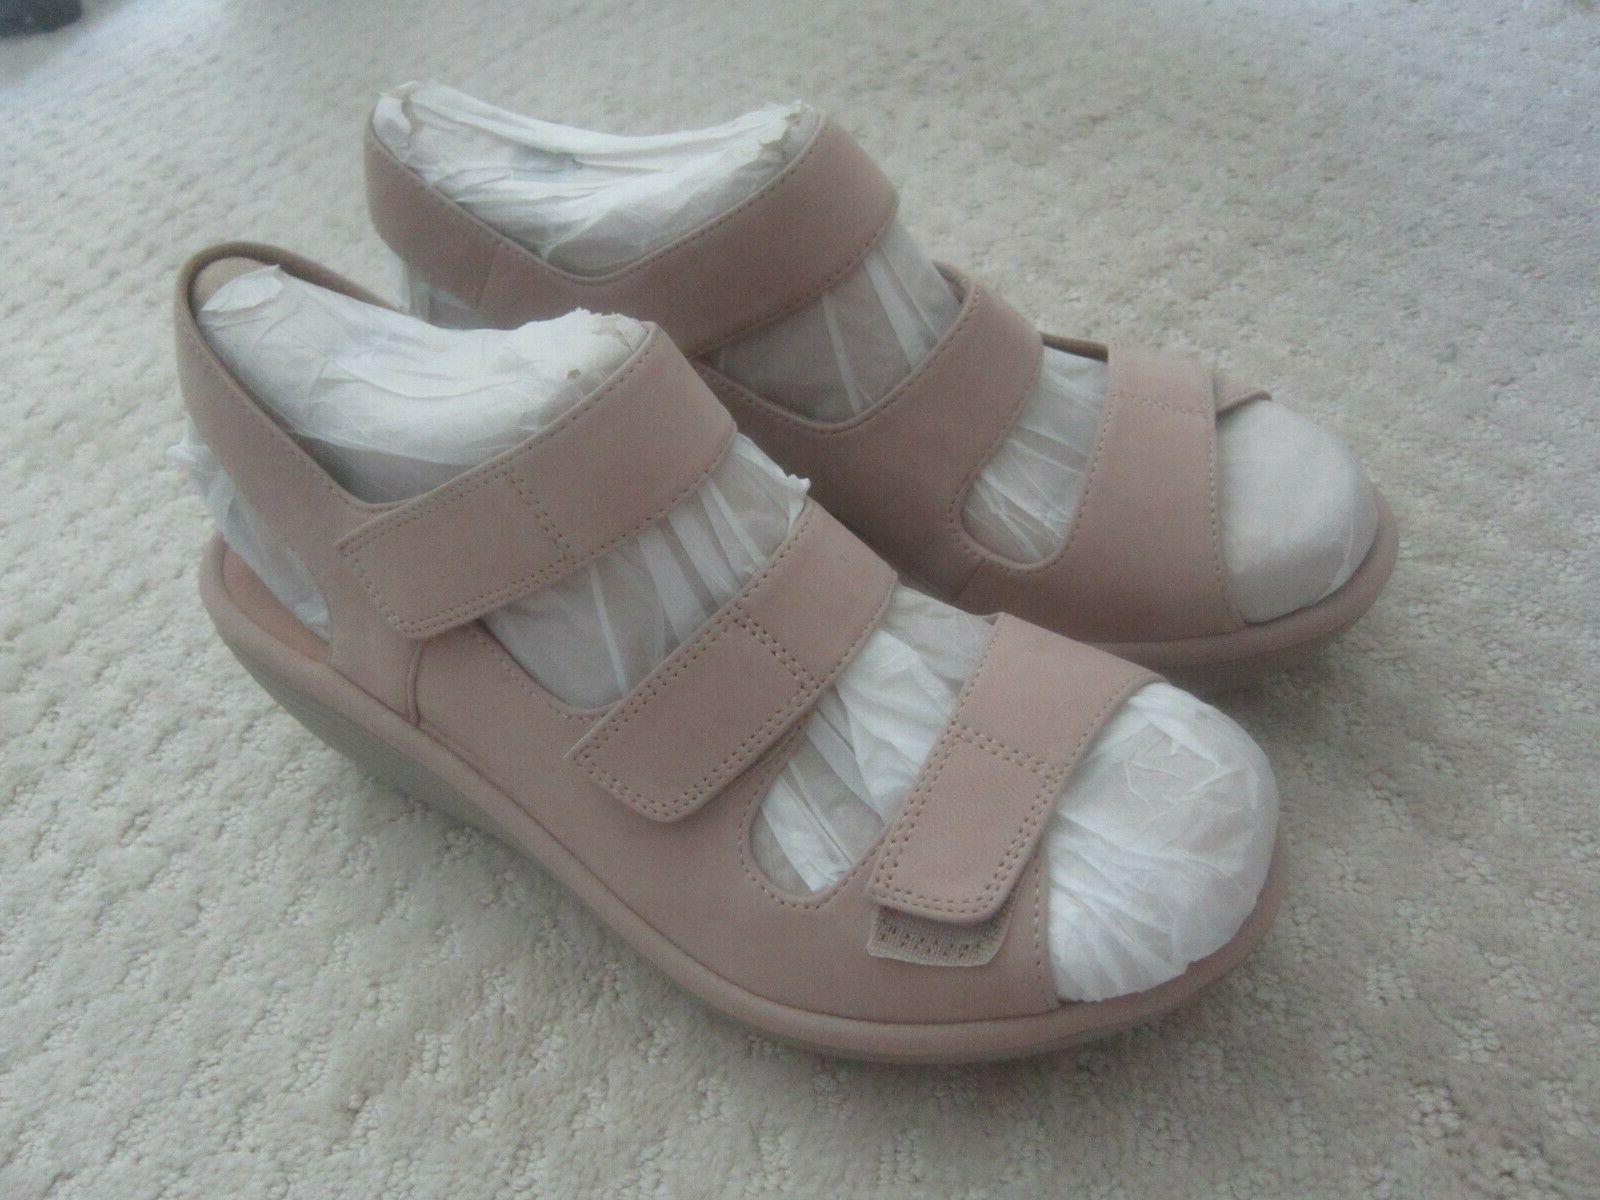 Clarks Reedly Juno Leather Sandals Tan New NWOB